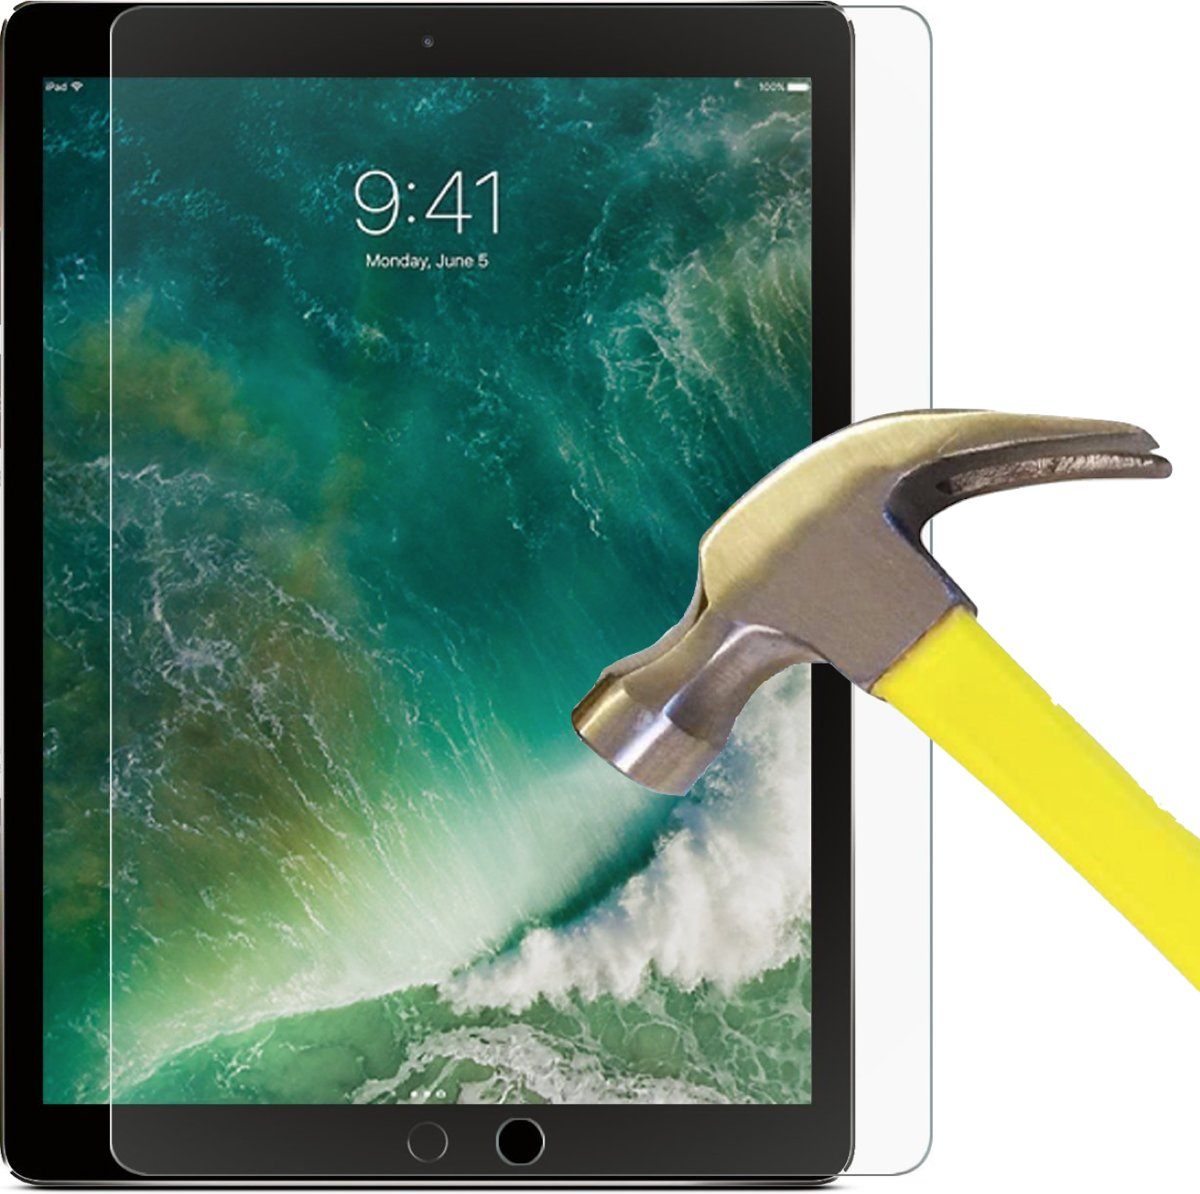 Apple iPad Pro 12.9 Inch (2017) - Tempered Glass Screenprotector Transparant 2,5D 9H (Gehard Glas Screen Protector - 0.3mm)